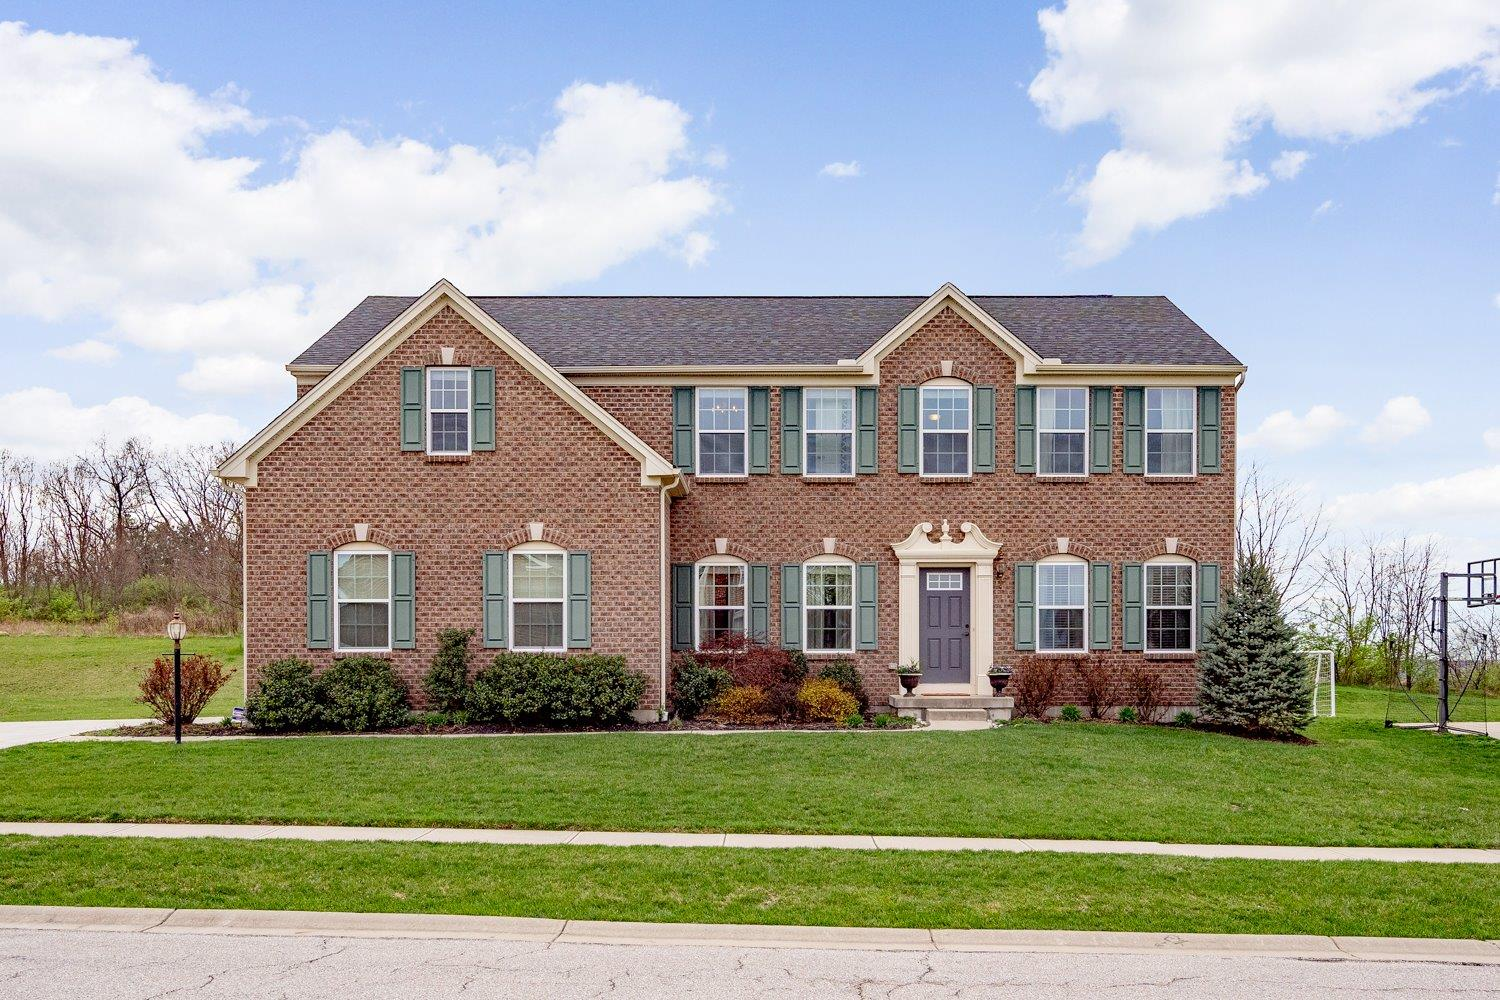 Property for sale at 5191 East View Drive, Union Twp,  Ohio 45150